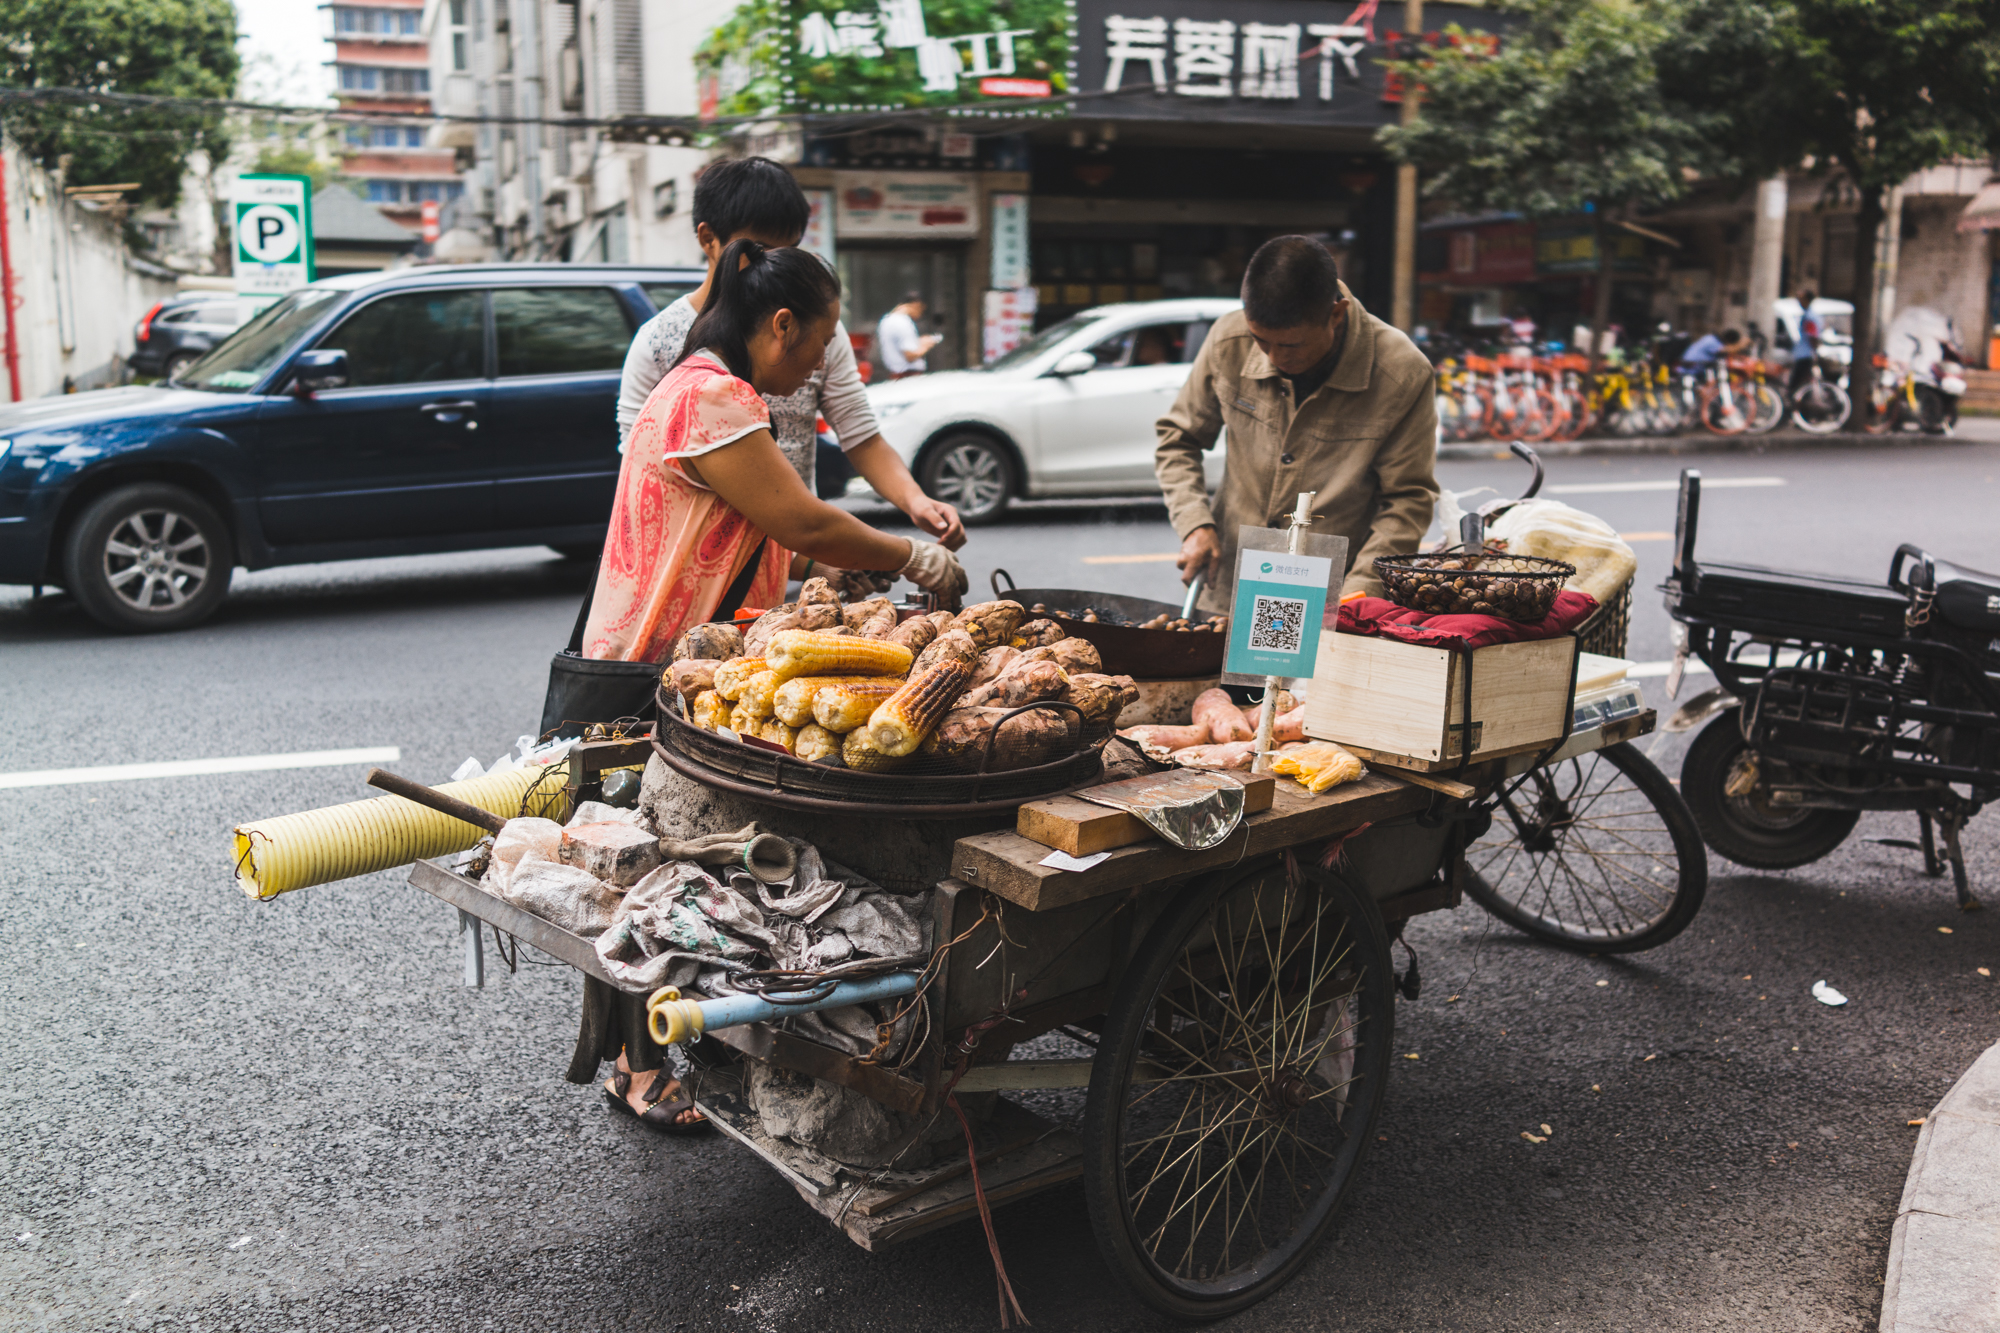 Street Vendor in Chengdu